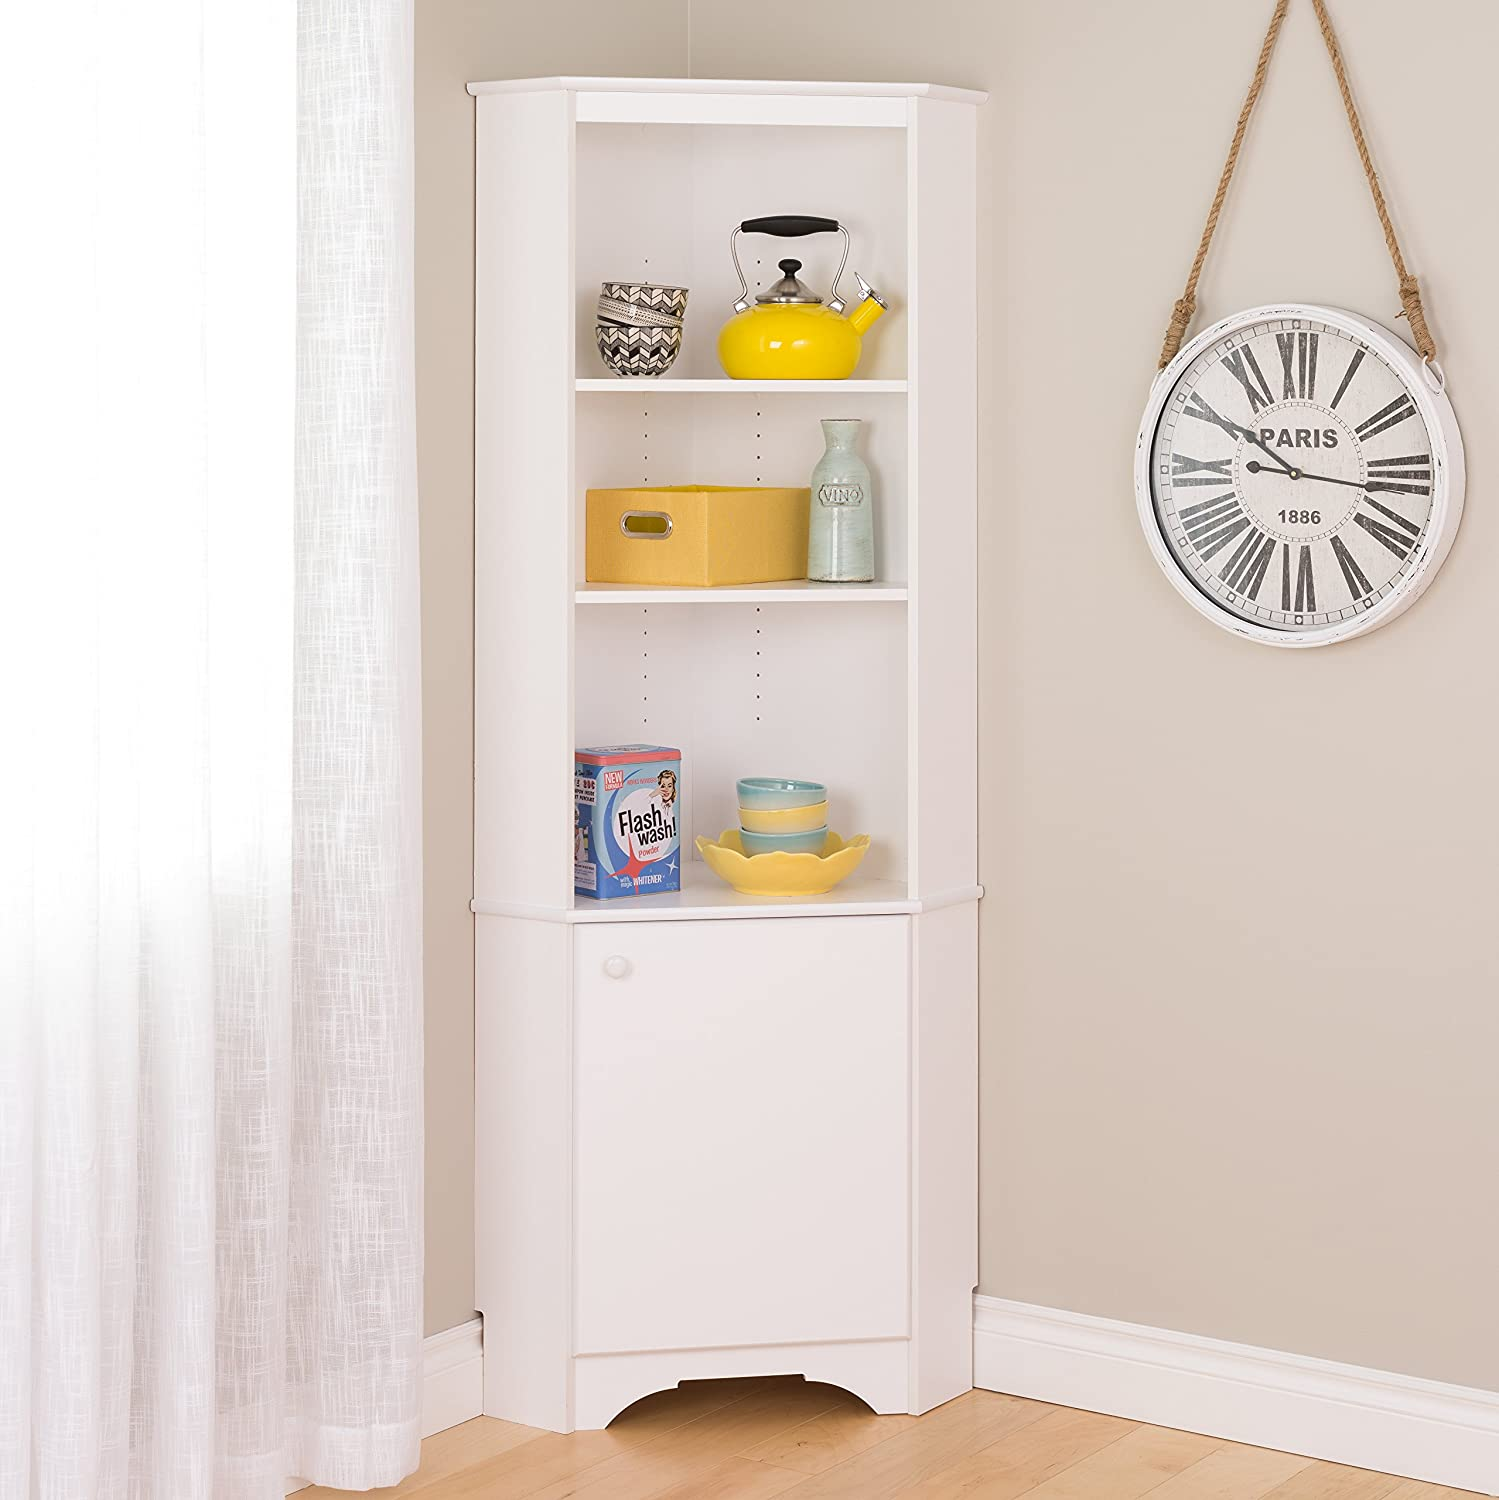 amazoncom prepac wscc home elite tall door corner storagecabinet white kitchen  dining. amazoncom prepac wscc home elite tall door corner